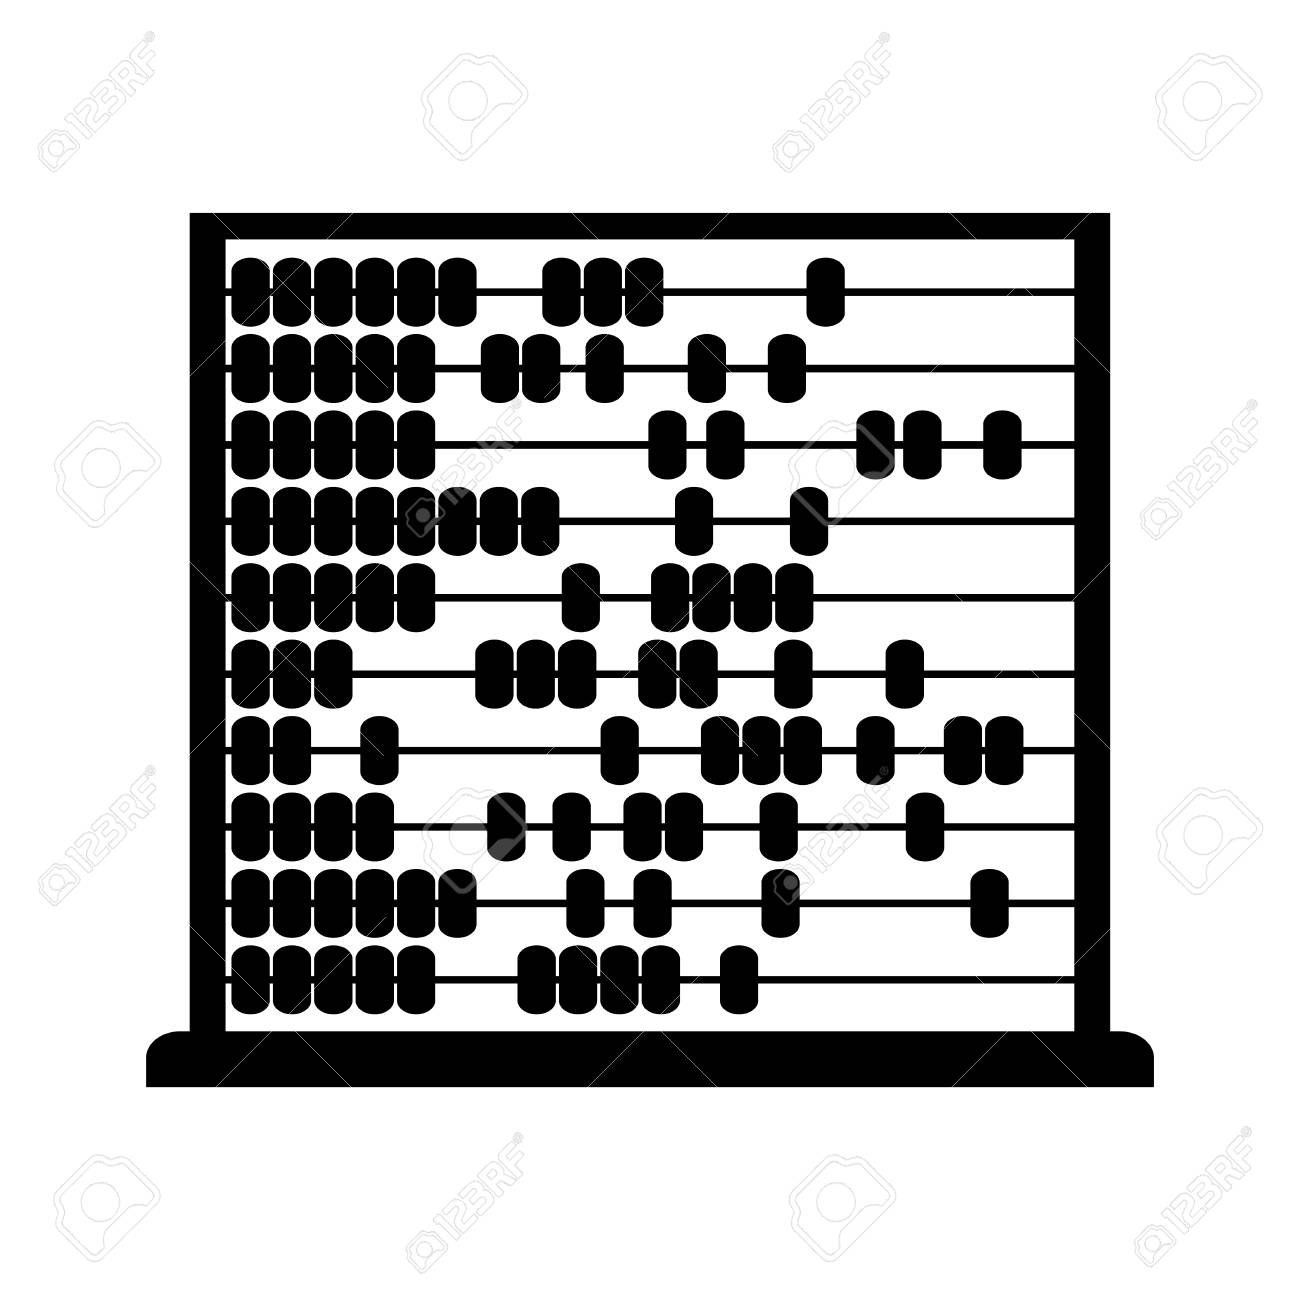 Black abacus vector icon.